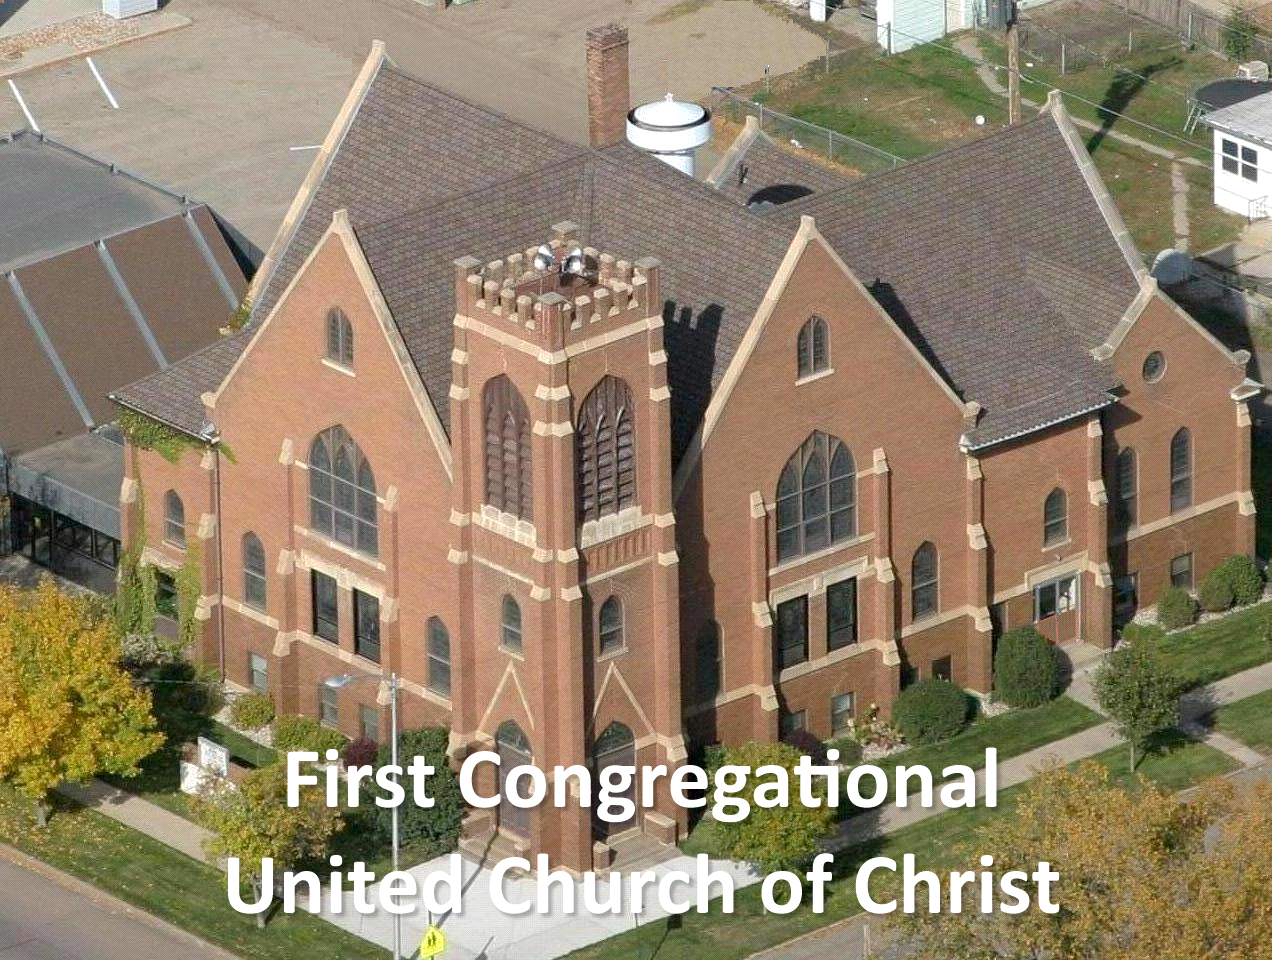 First Congregational United Church of Christ Slide Image